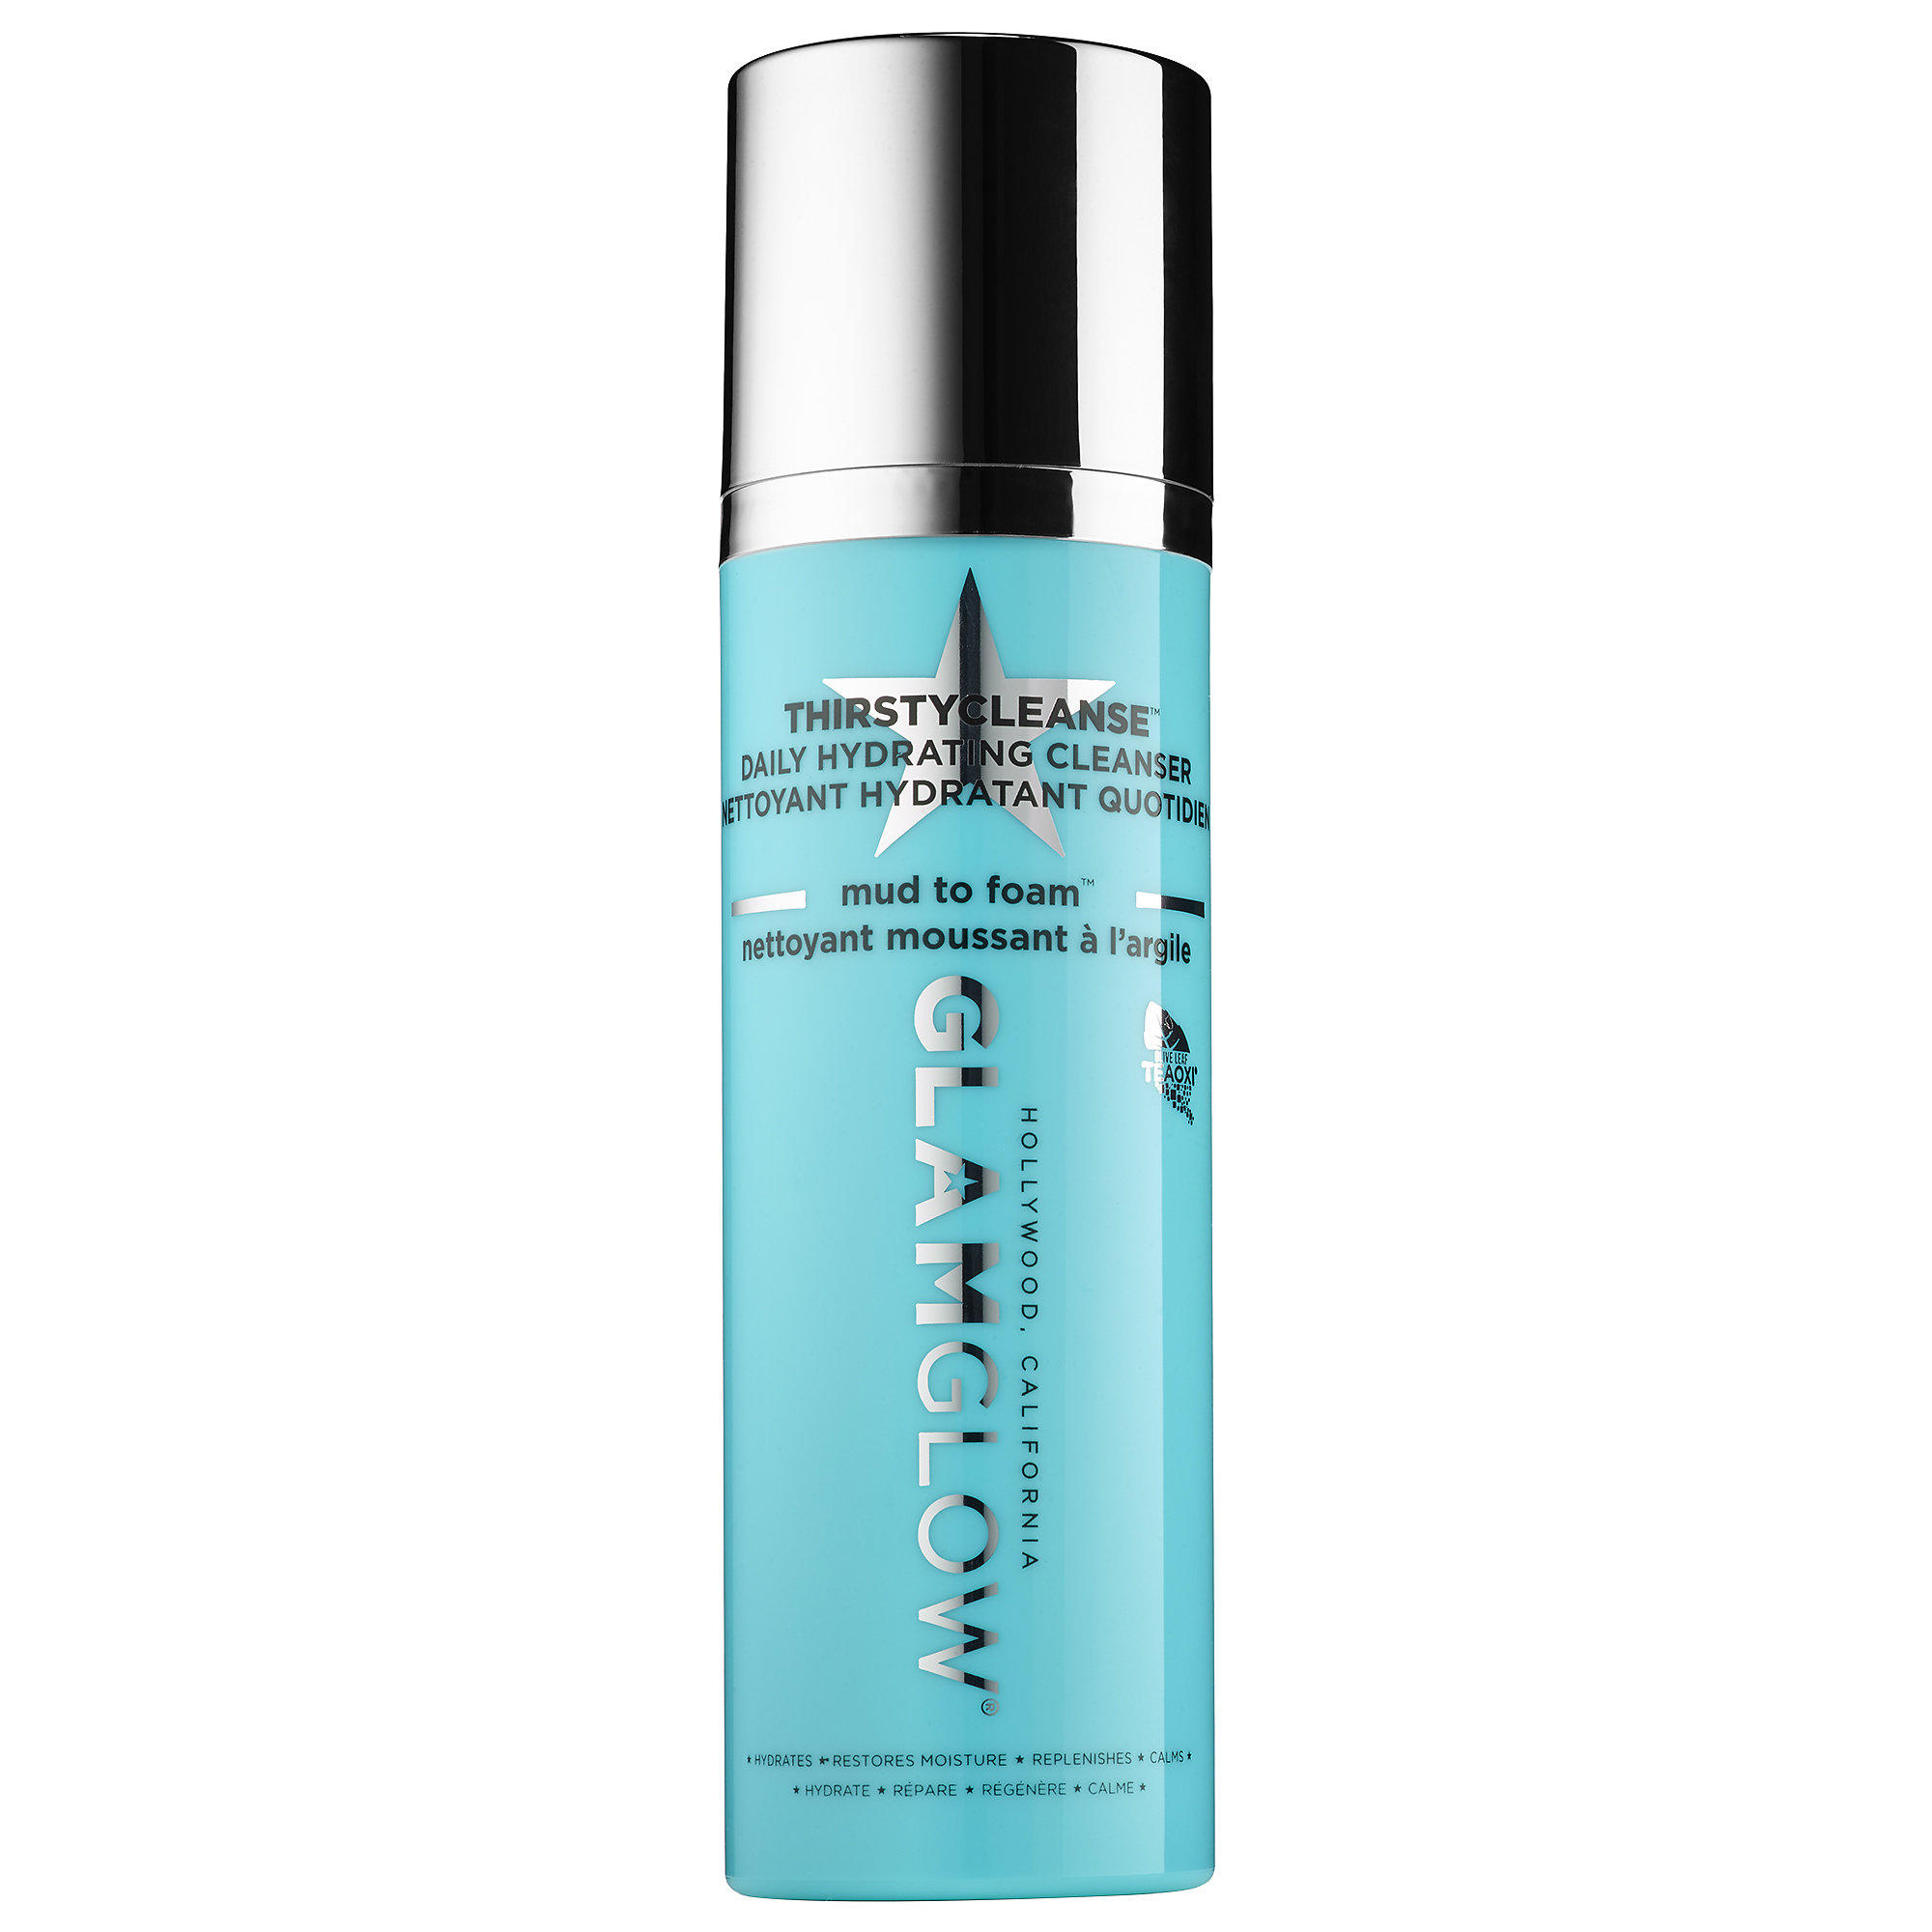 Glamglow Thirstycleanse Daily Treatment Cleanser Mud To Foam 150g